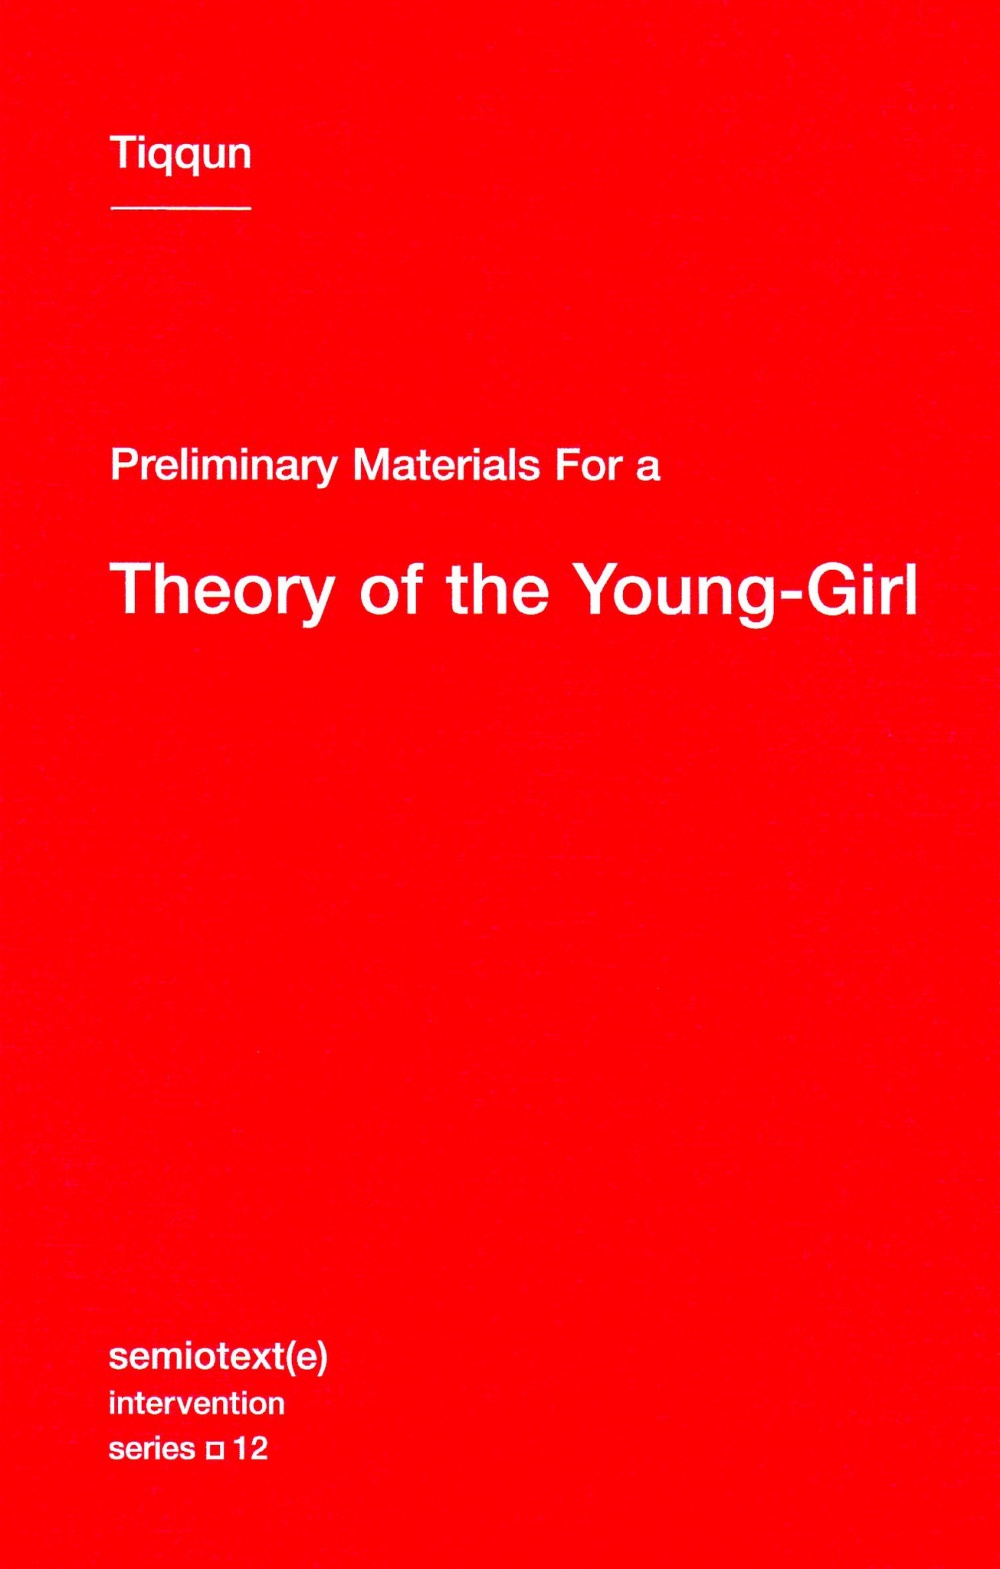 Tiqqun - Preliminary Materials for a Theory of the Young-Girl